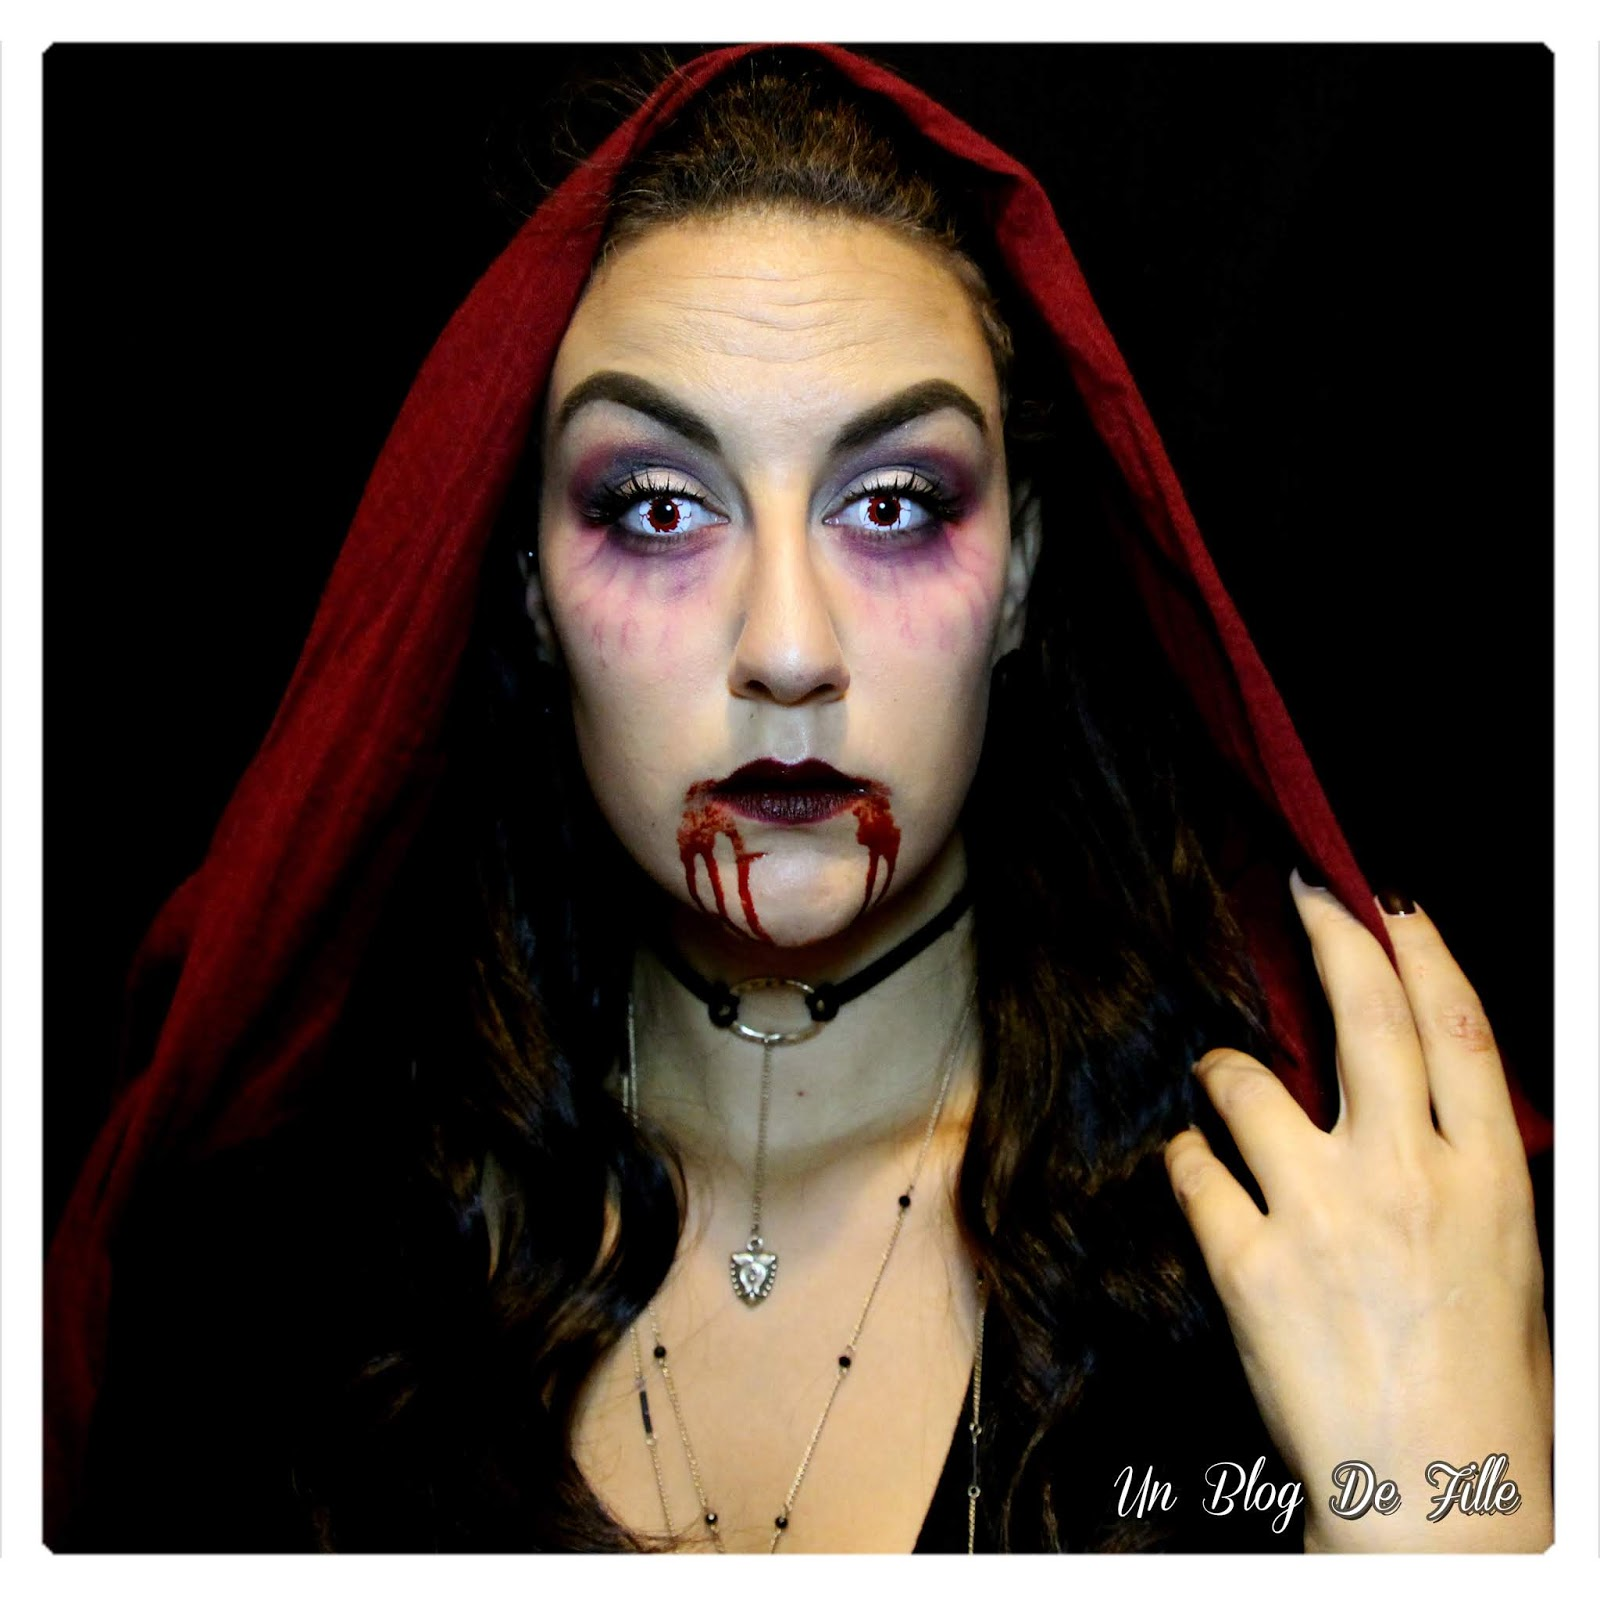 http://www.unblogdefille.fr/2018/10/maquillage-halloween-vampire-sexy.html